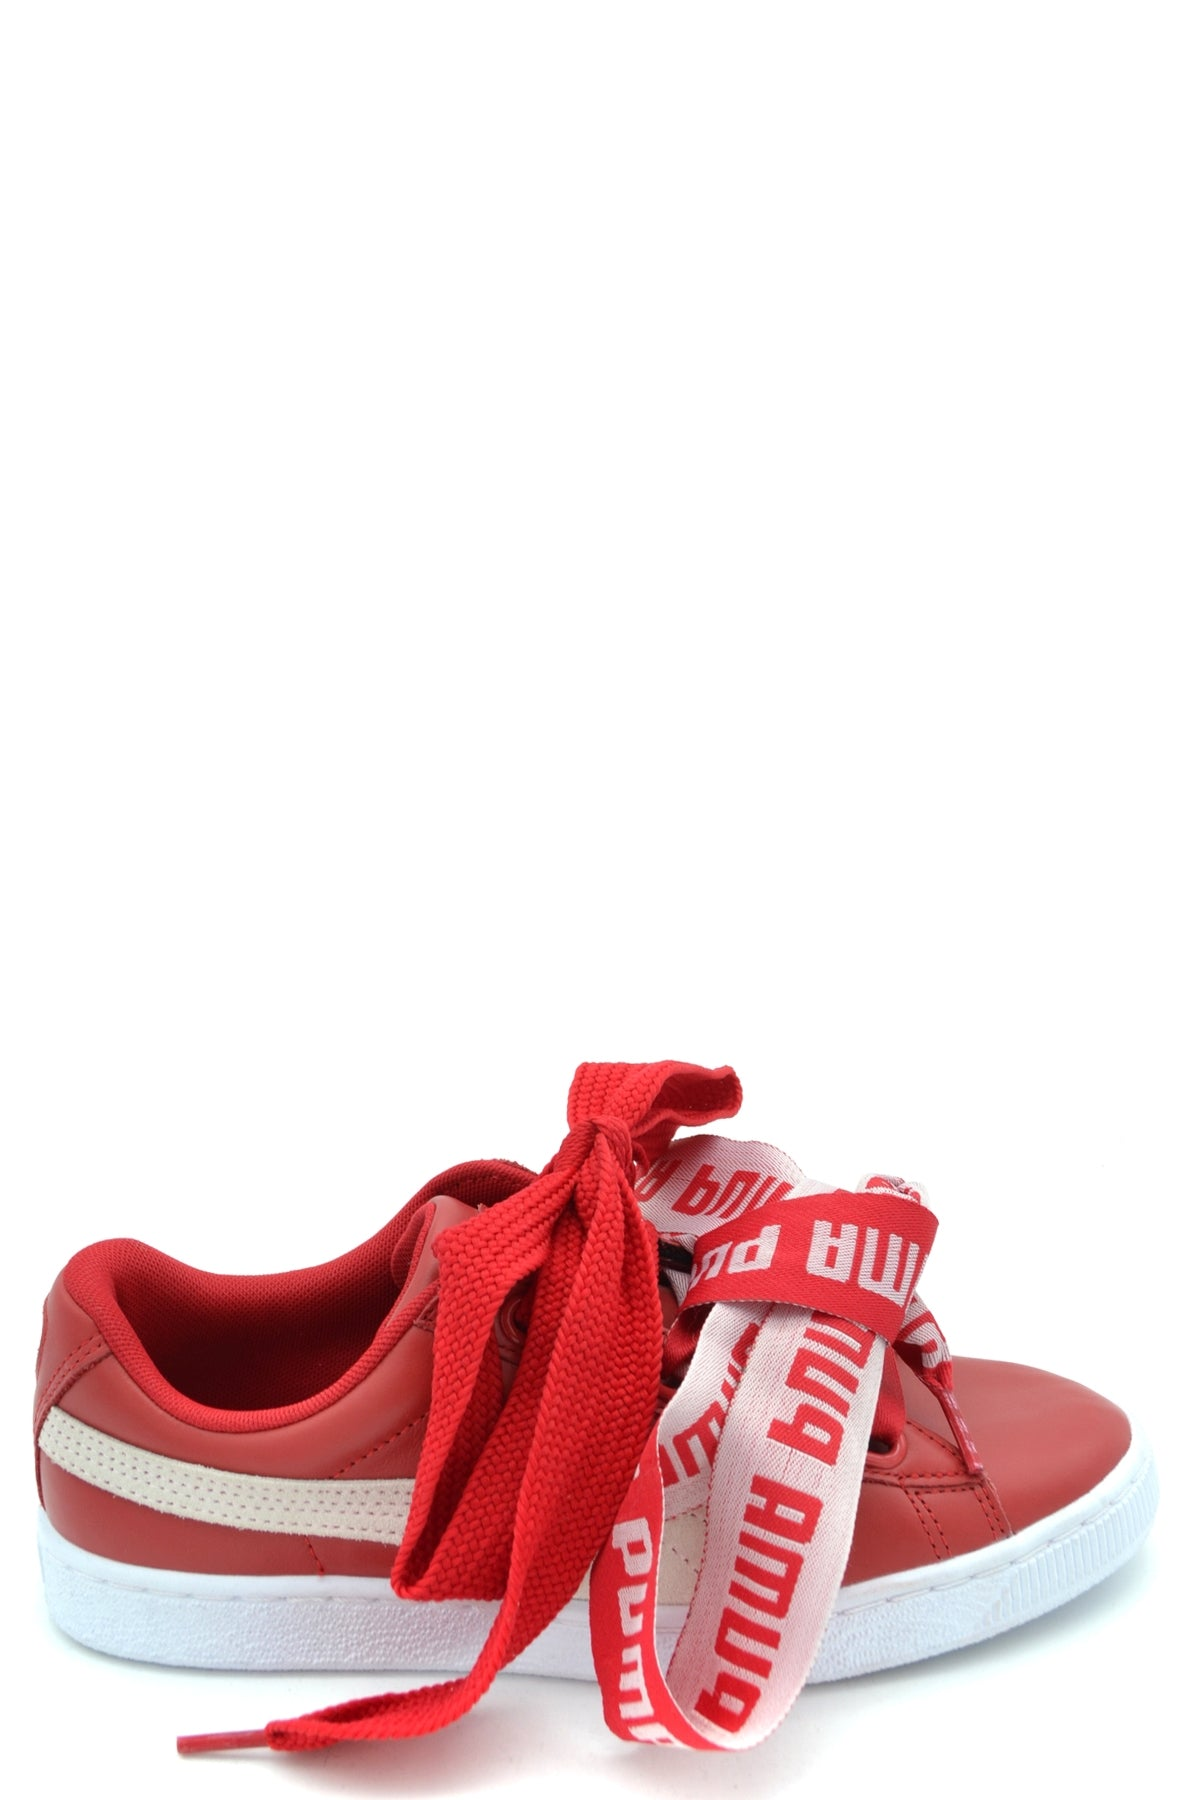 Shoes Puma-Sneakers - WOMAN-36-Product Details Type Of Accessory: ShoesSeason: Spring / SummerTerms: New With LabelMain Color: RedGender: WomanMade In: VietnamManufacturer Part Number: 364082 03Size: EuYear: 2018Composition: Leather 100%-Keyomi-Sook